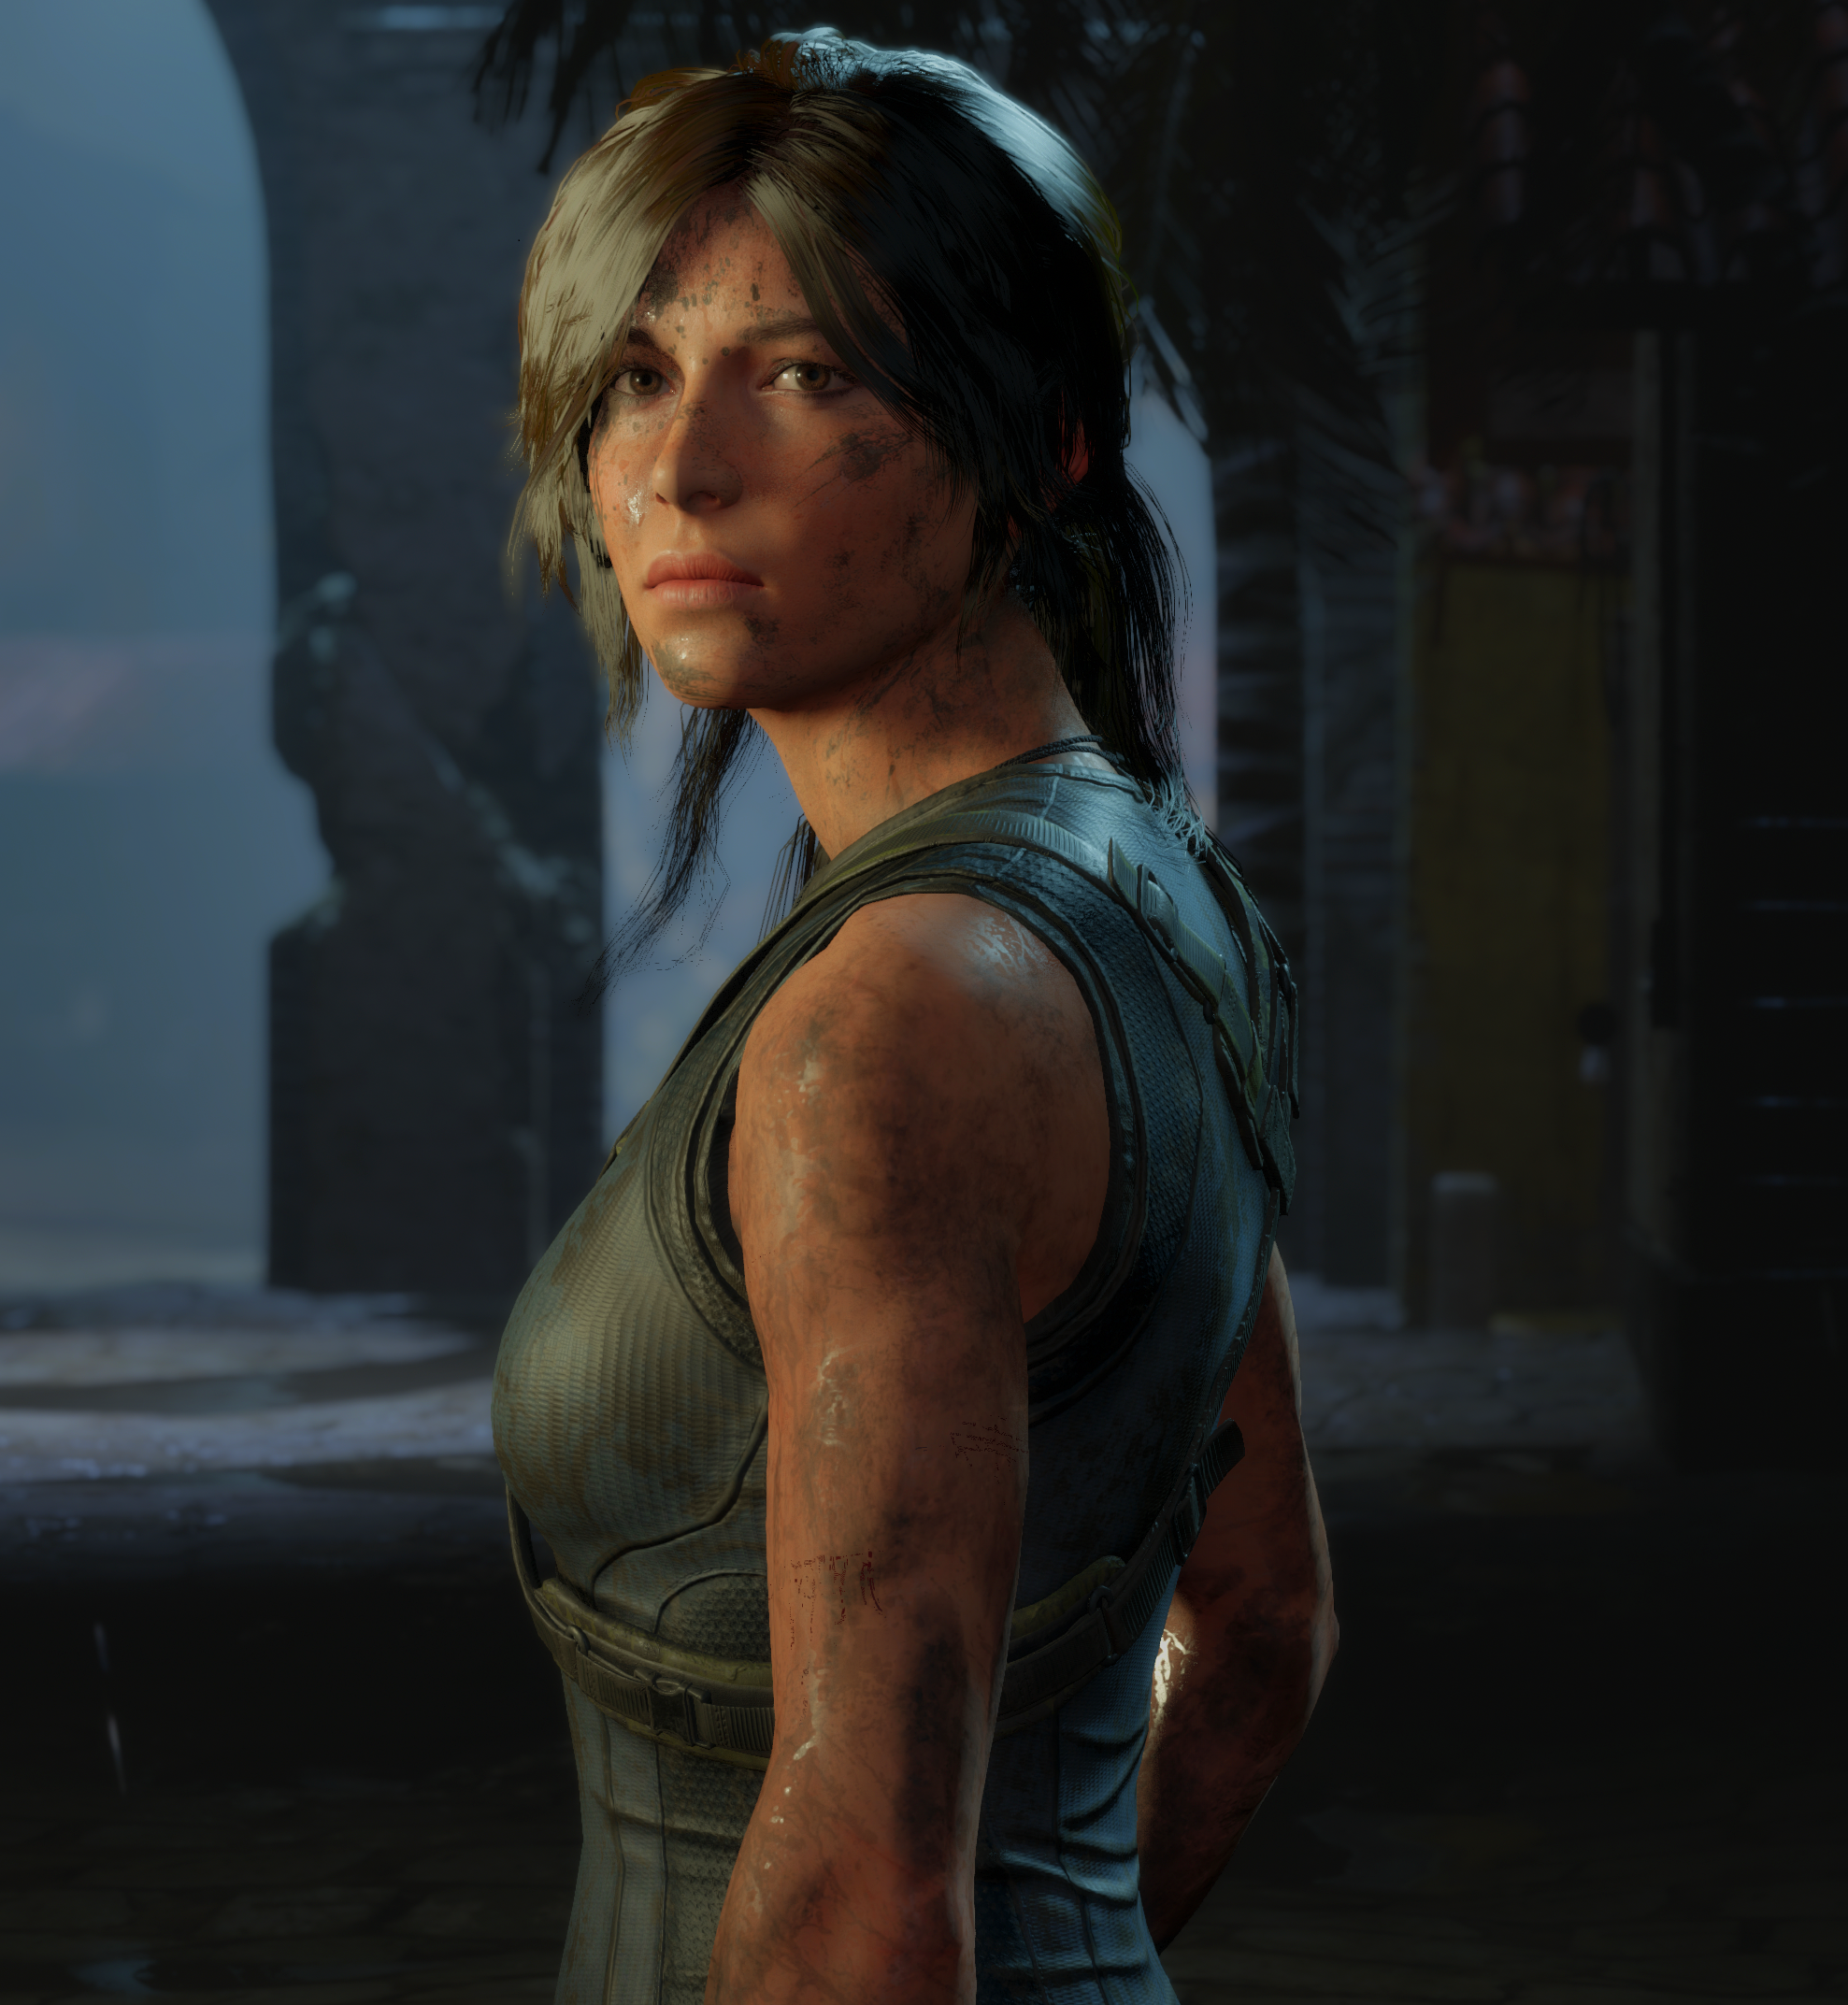 Shadow of the Tomb Raider Raises The Bar with Real-Time Ray Traced